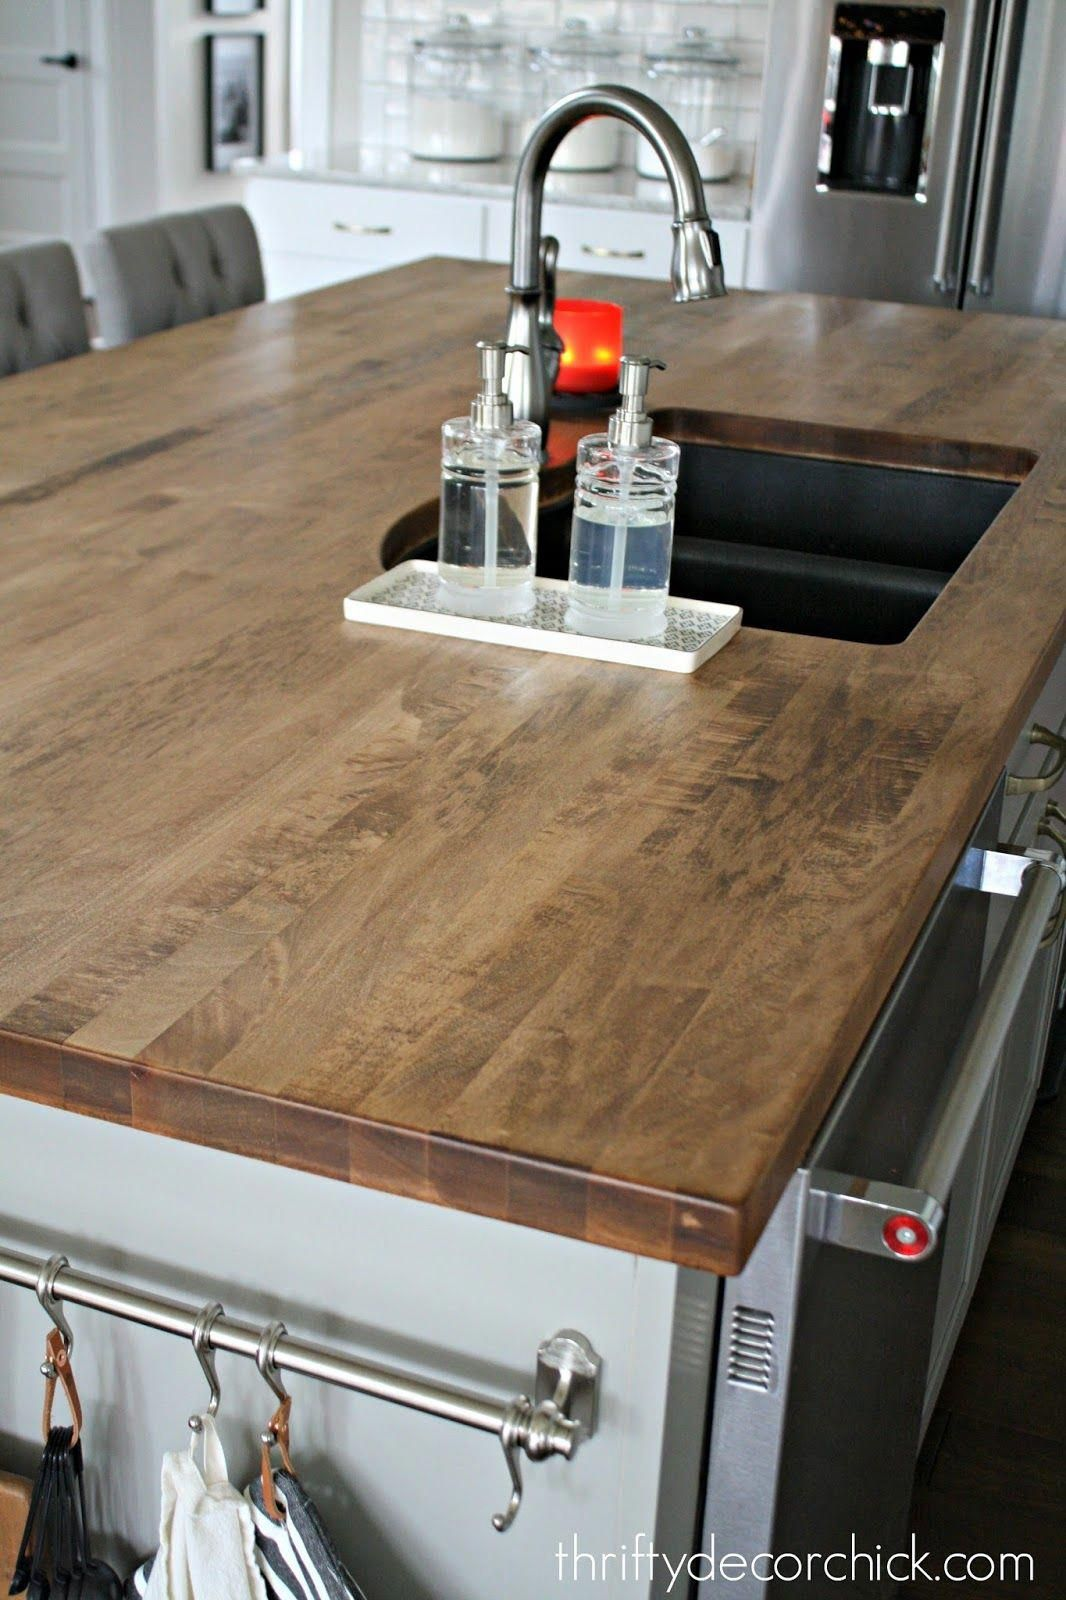 How to finish and protect wood counters around a sink in